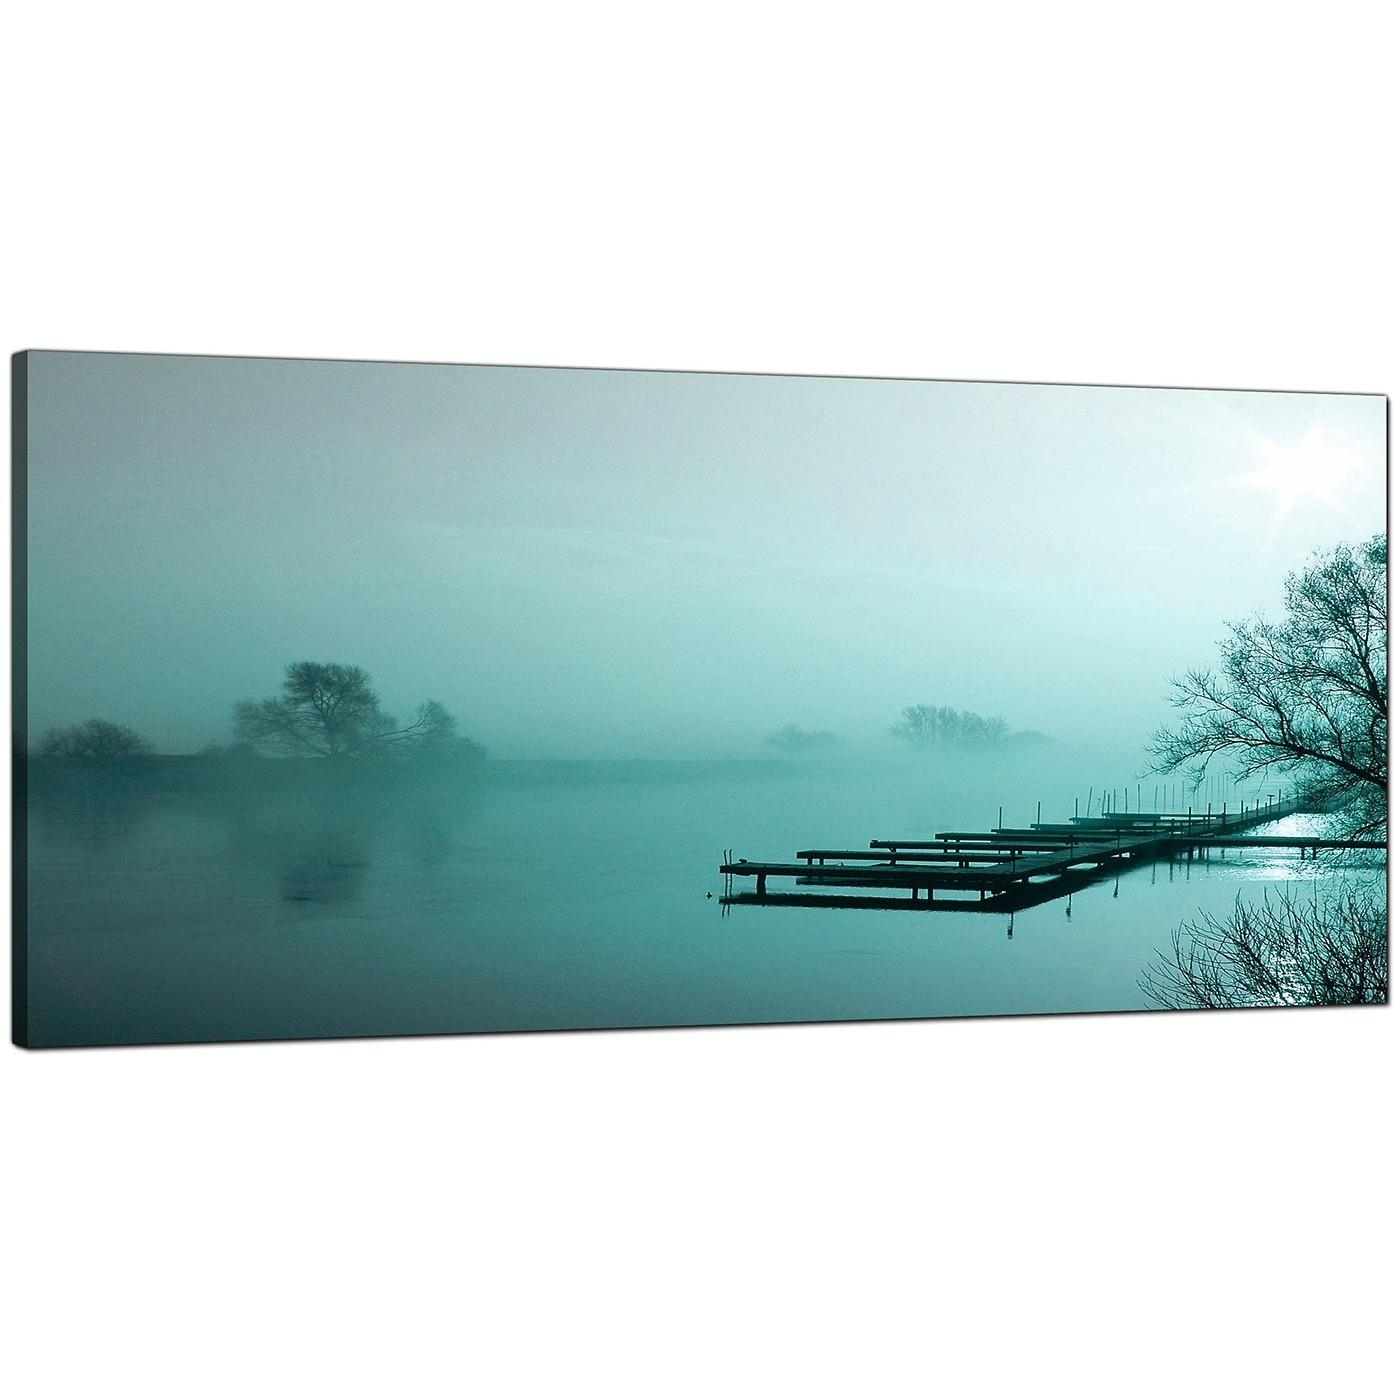 Large Teal Canvas Art Of A River Landscape Within Teal Wall Art Uk (View 8 of 20)